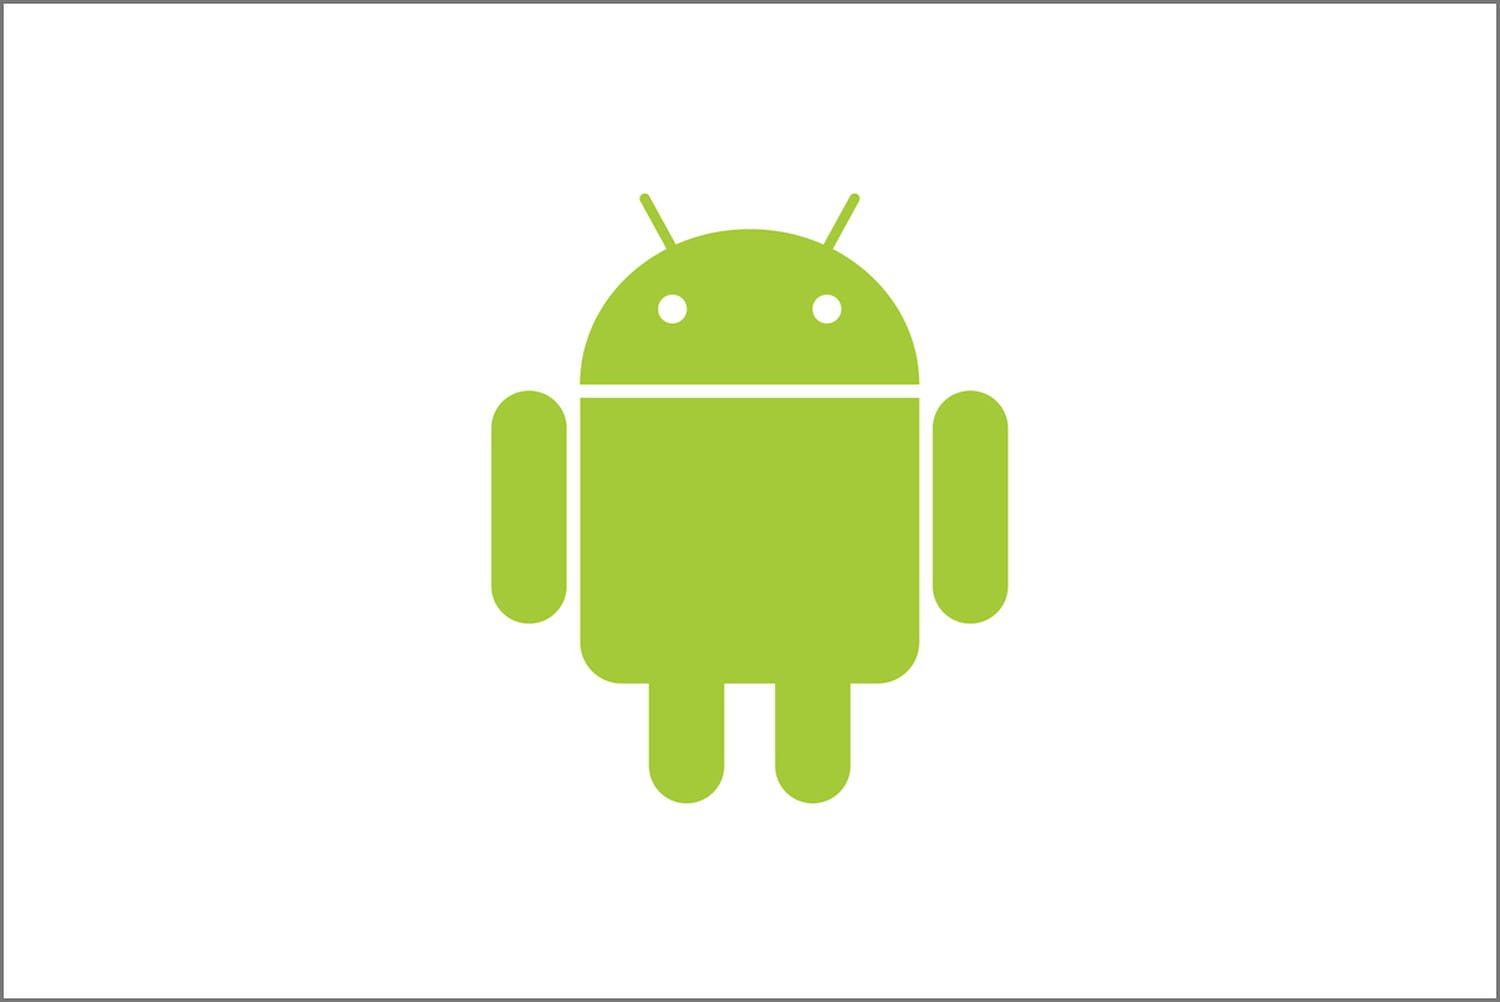 Corriger l'erreur: All com.android.support libraries must use the exact same version specification